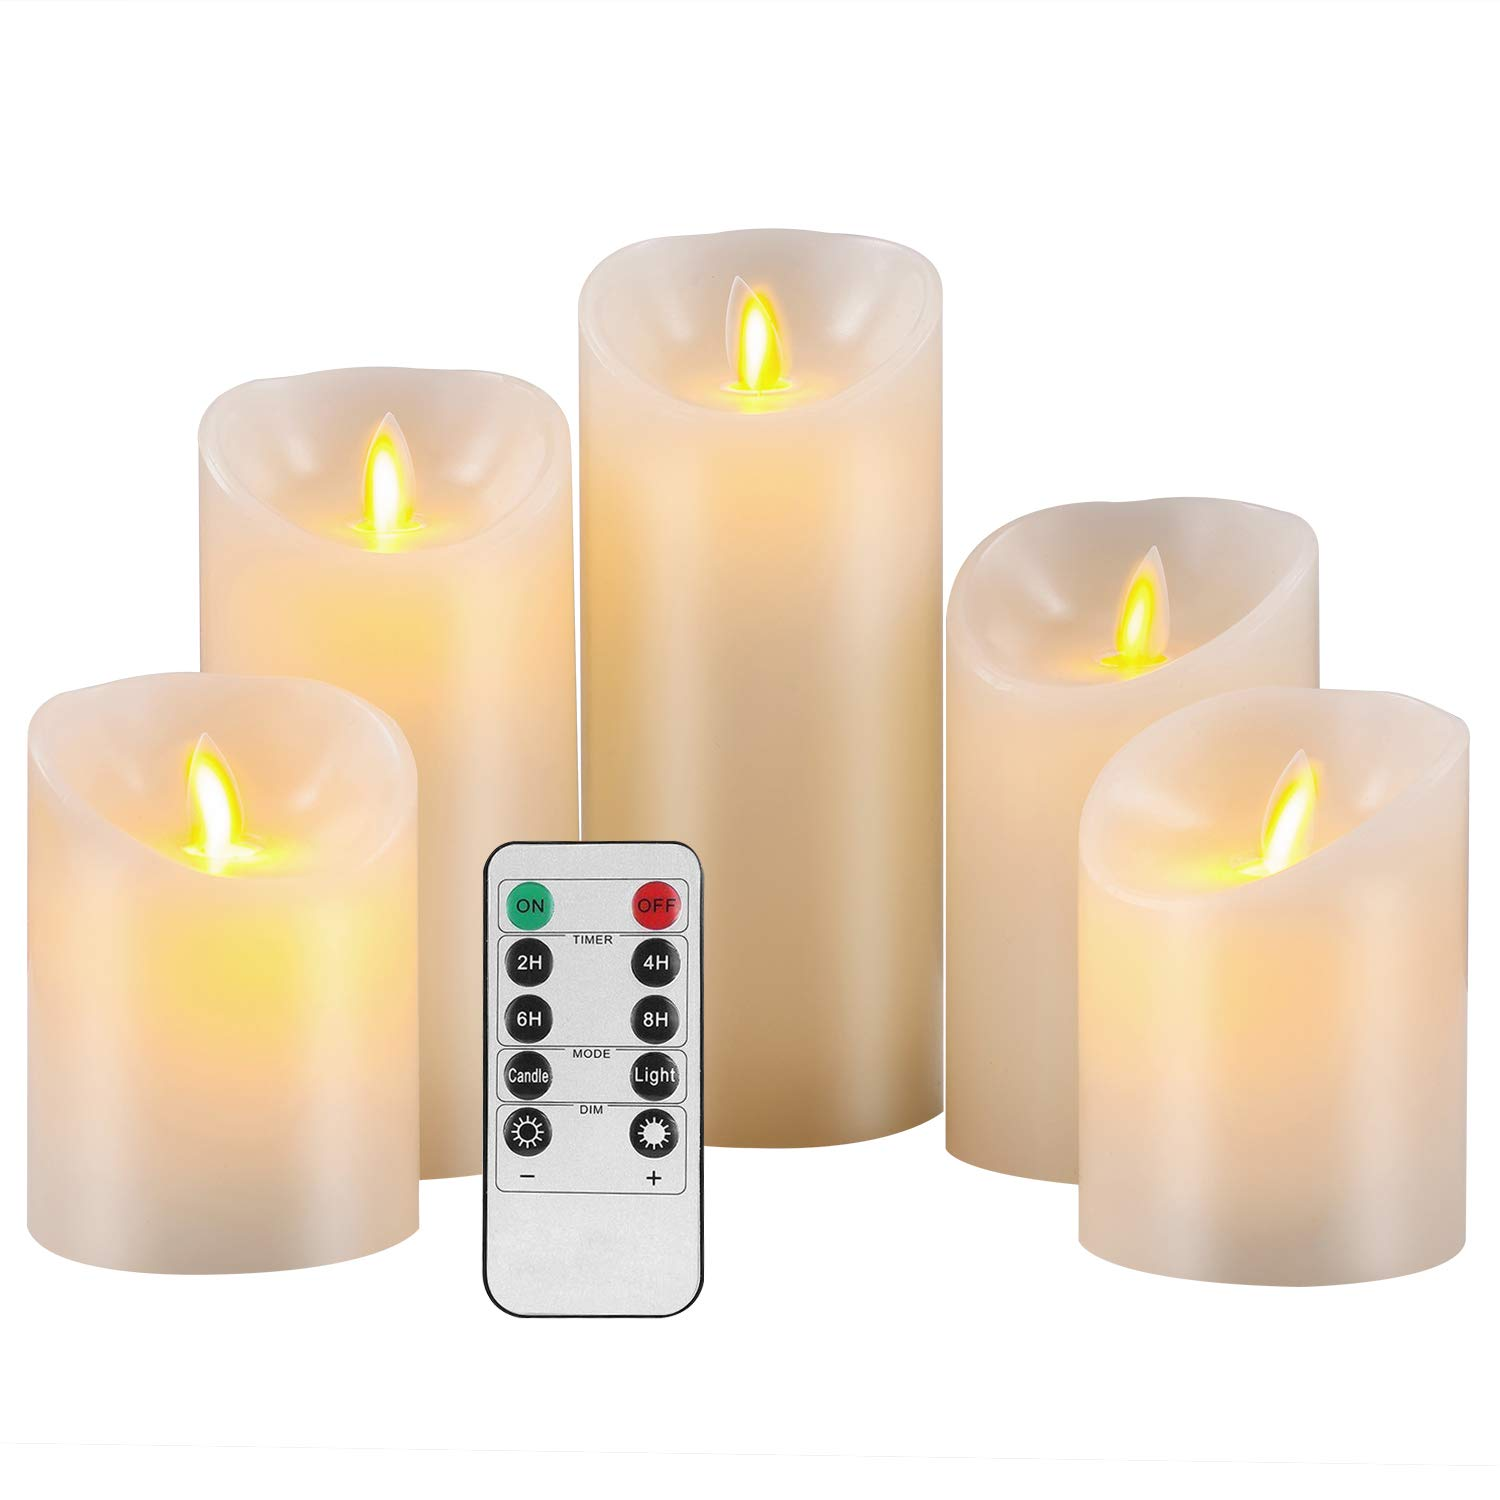 Pandaing Flameless Candles Set of 5 (D 3'' x H 4'' 4'' 5'' 6'' 7'') Battery Operated LED Pillar Real Wax Moving Flame Flickering Electric Candle Gift Set with Remote Control Cycling 24 Hours Timer by Pandaing